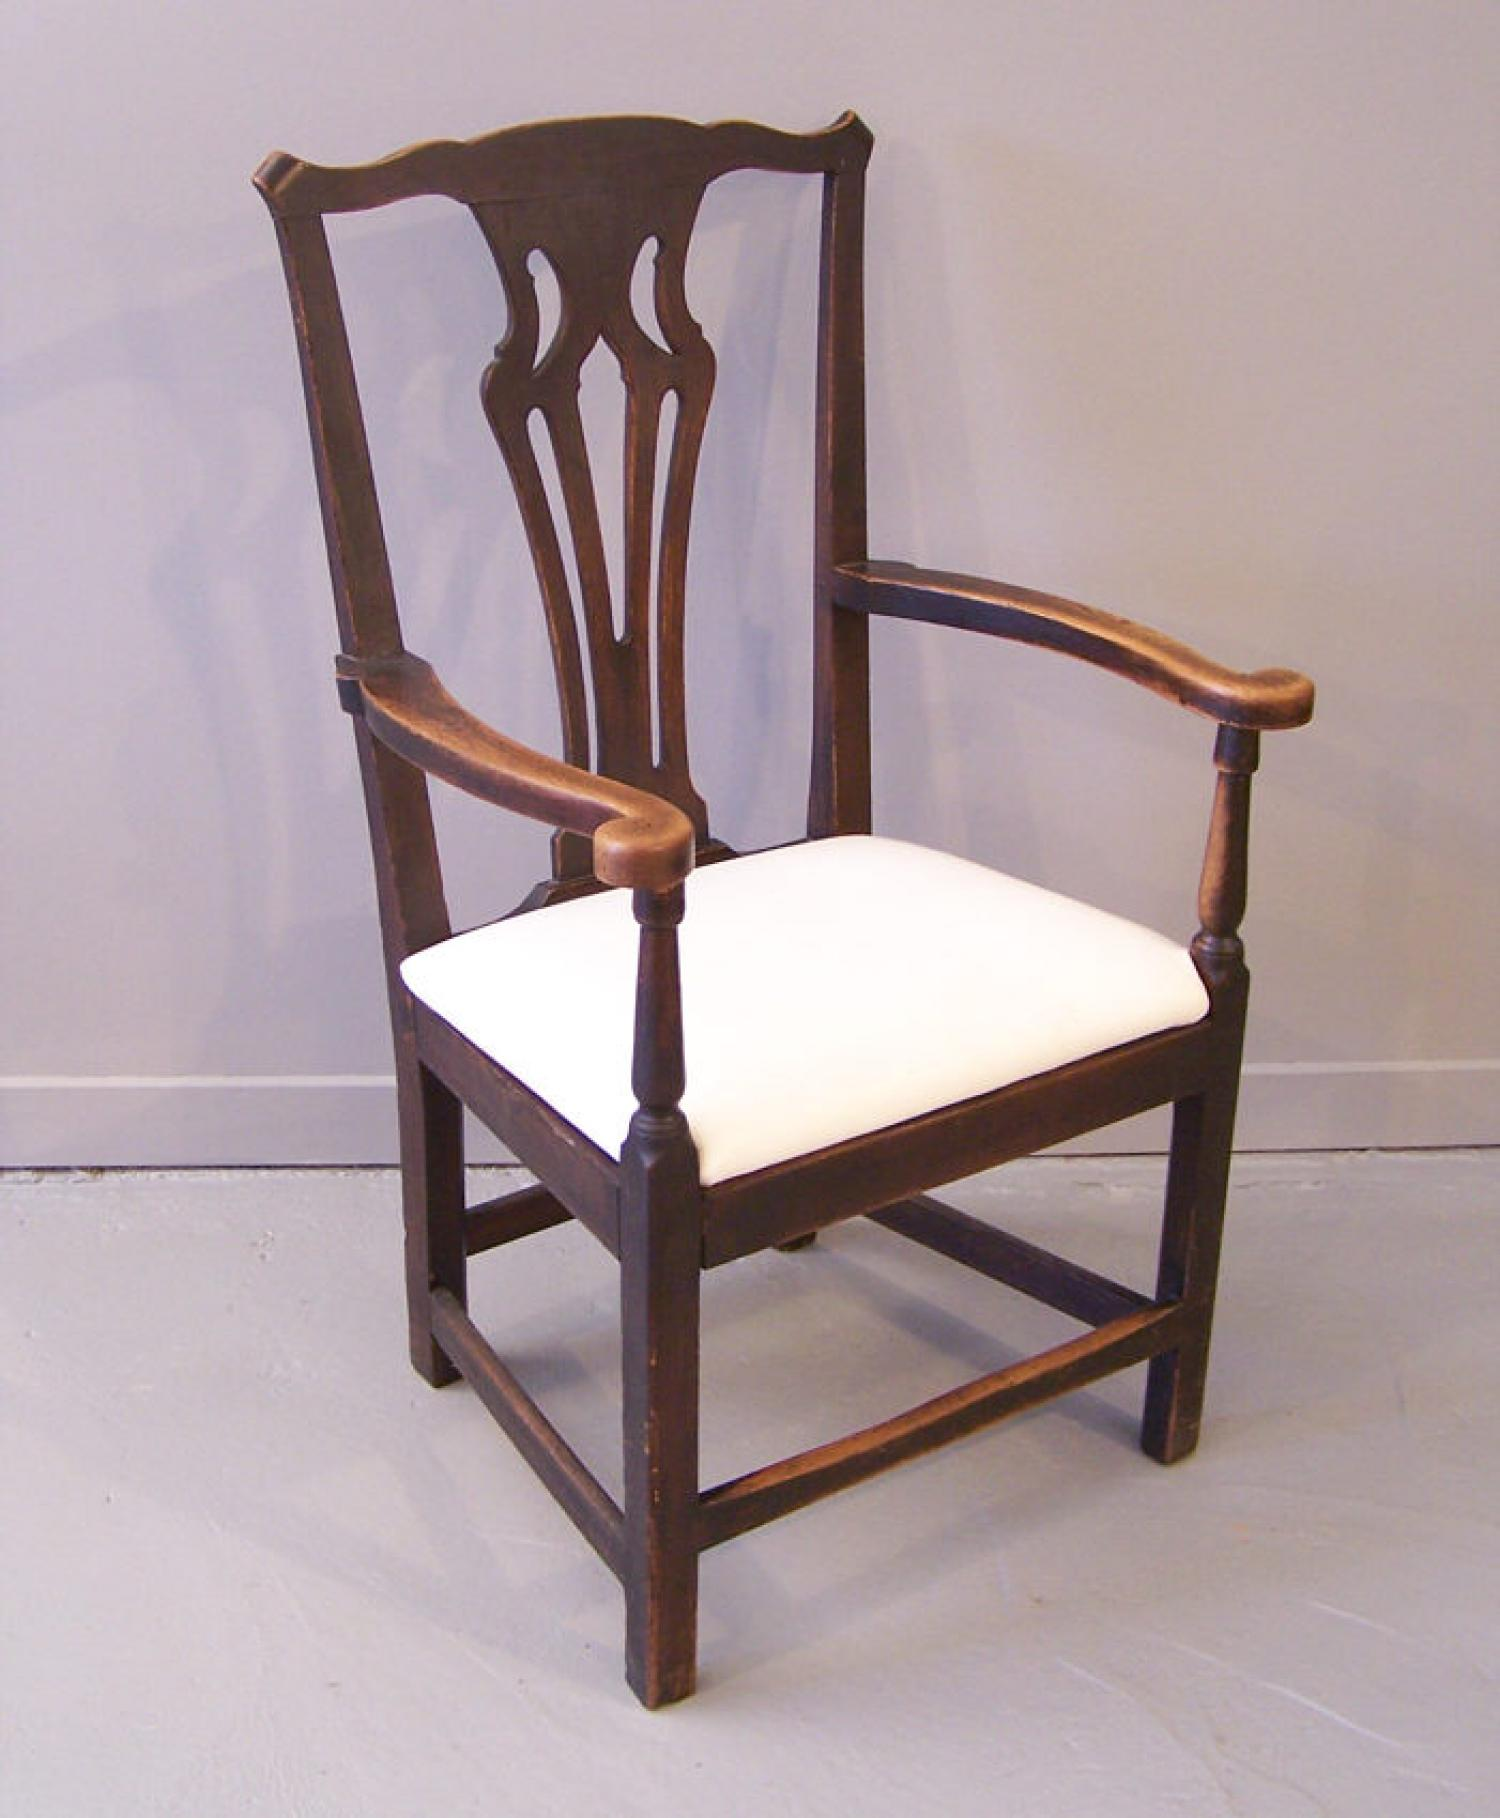 English period country chippendale oak arm chair c